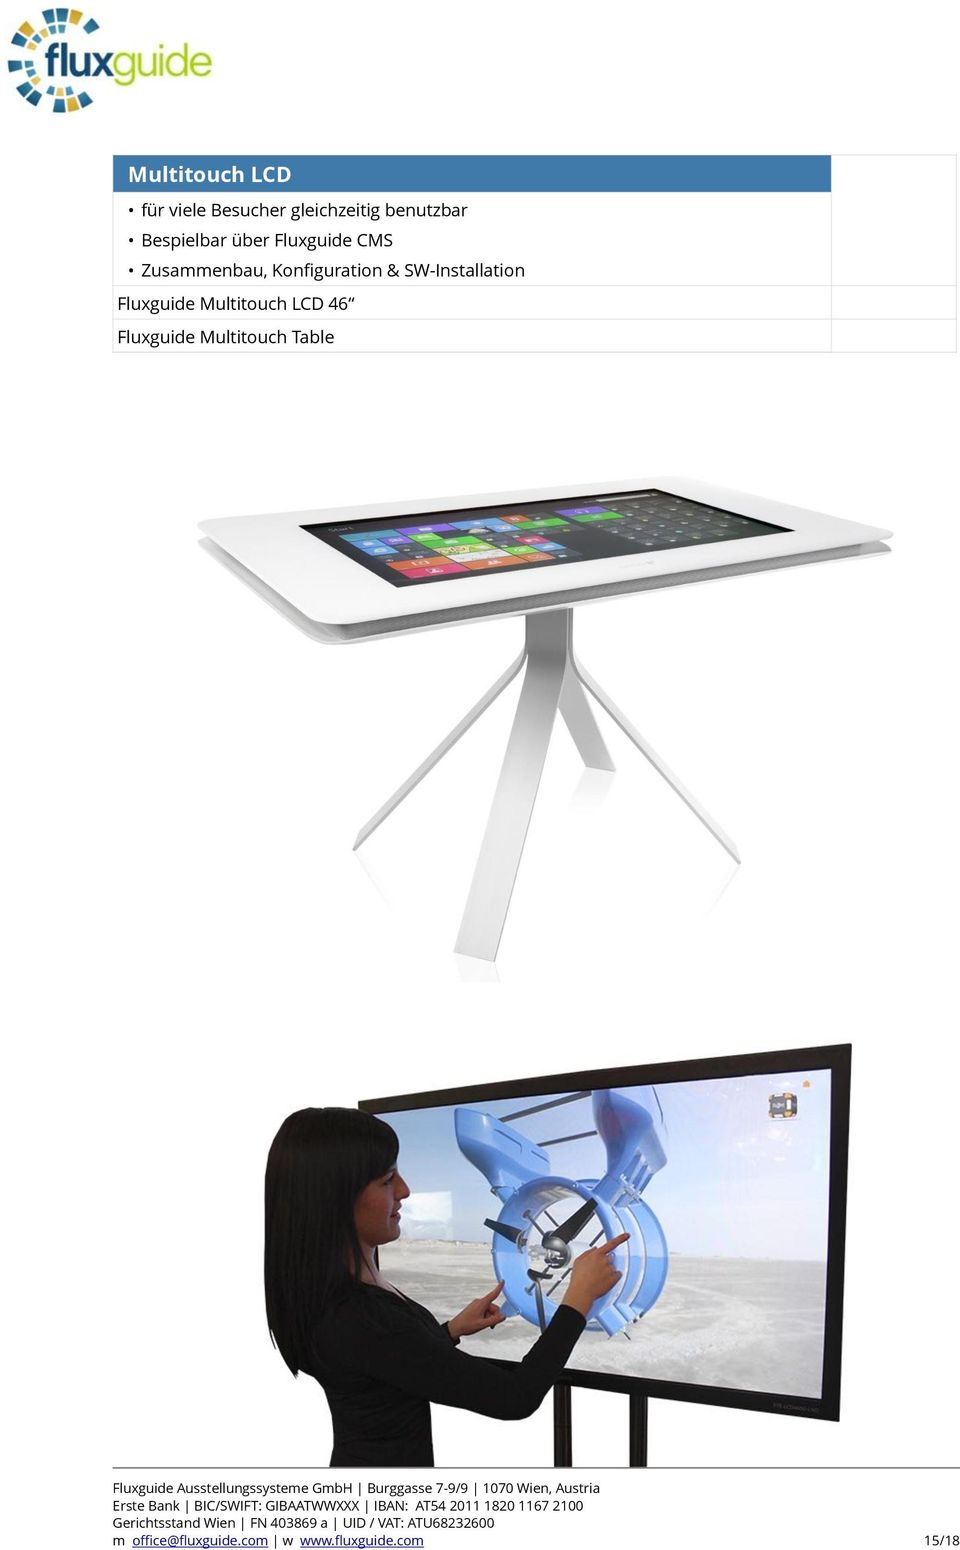 Multitouch LCD 46 Fluxguide Multitouch Table Erste Bank BIC/SWIFT: